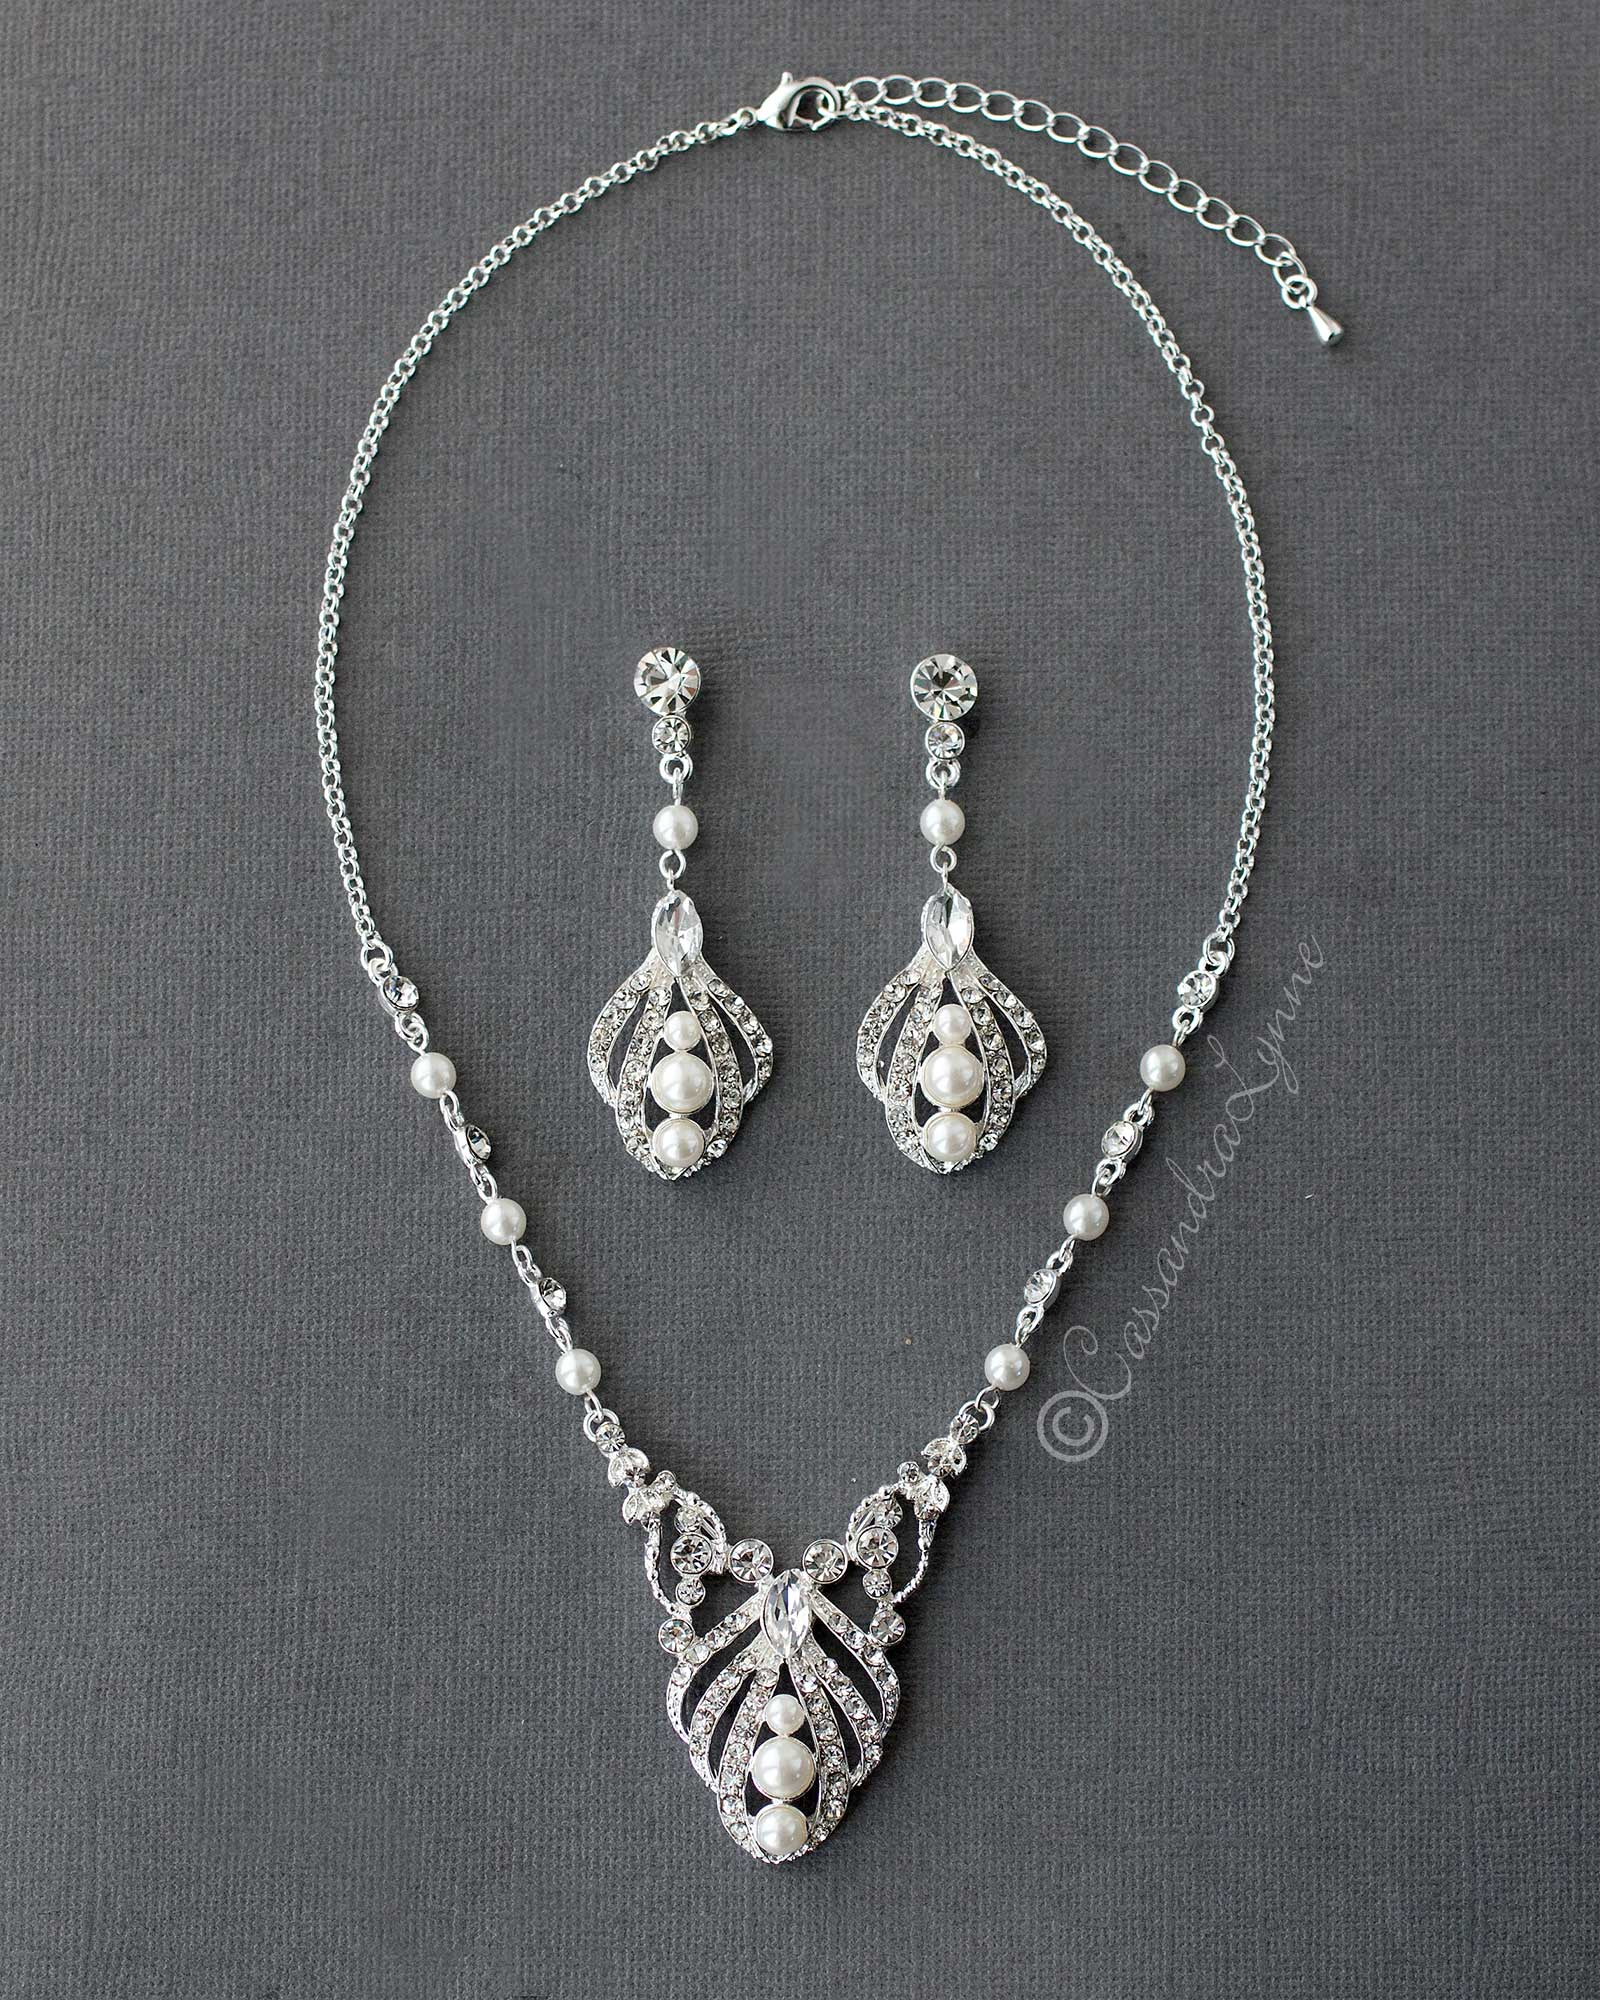 Regal Pearl Bridal Necklace Set